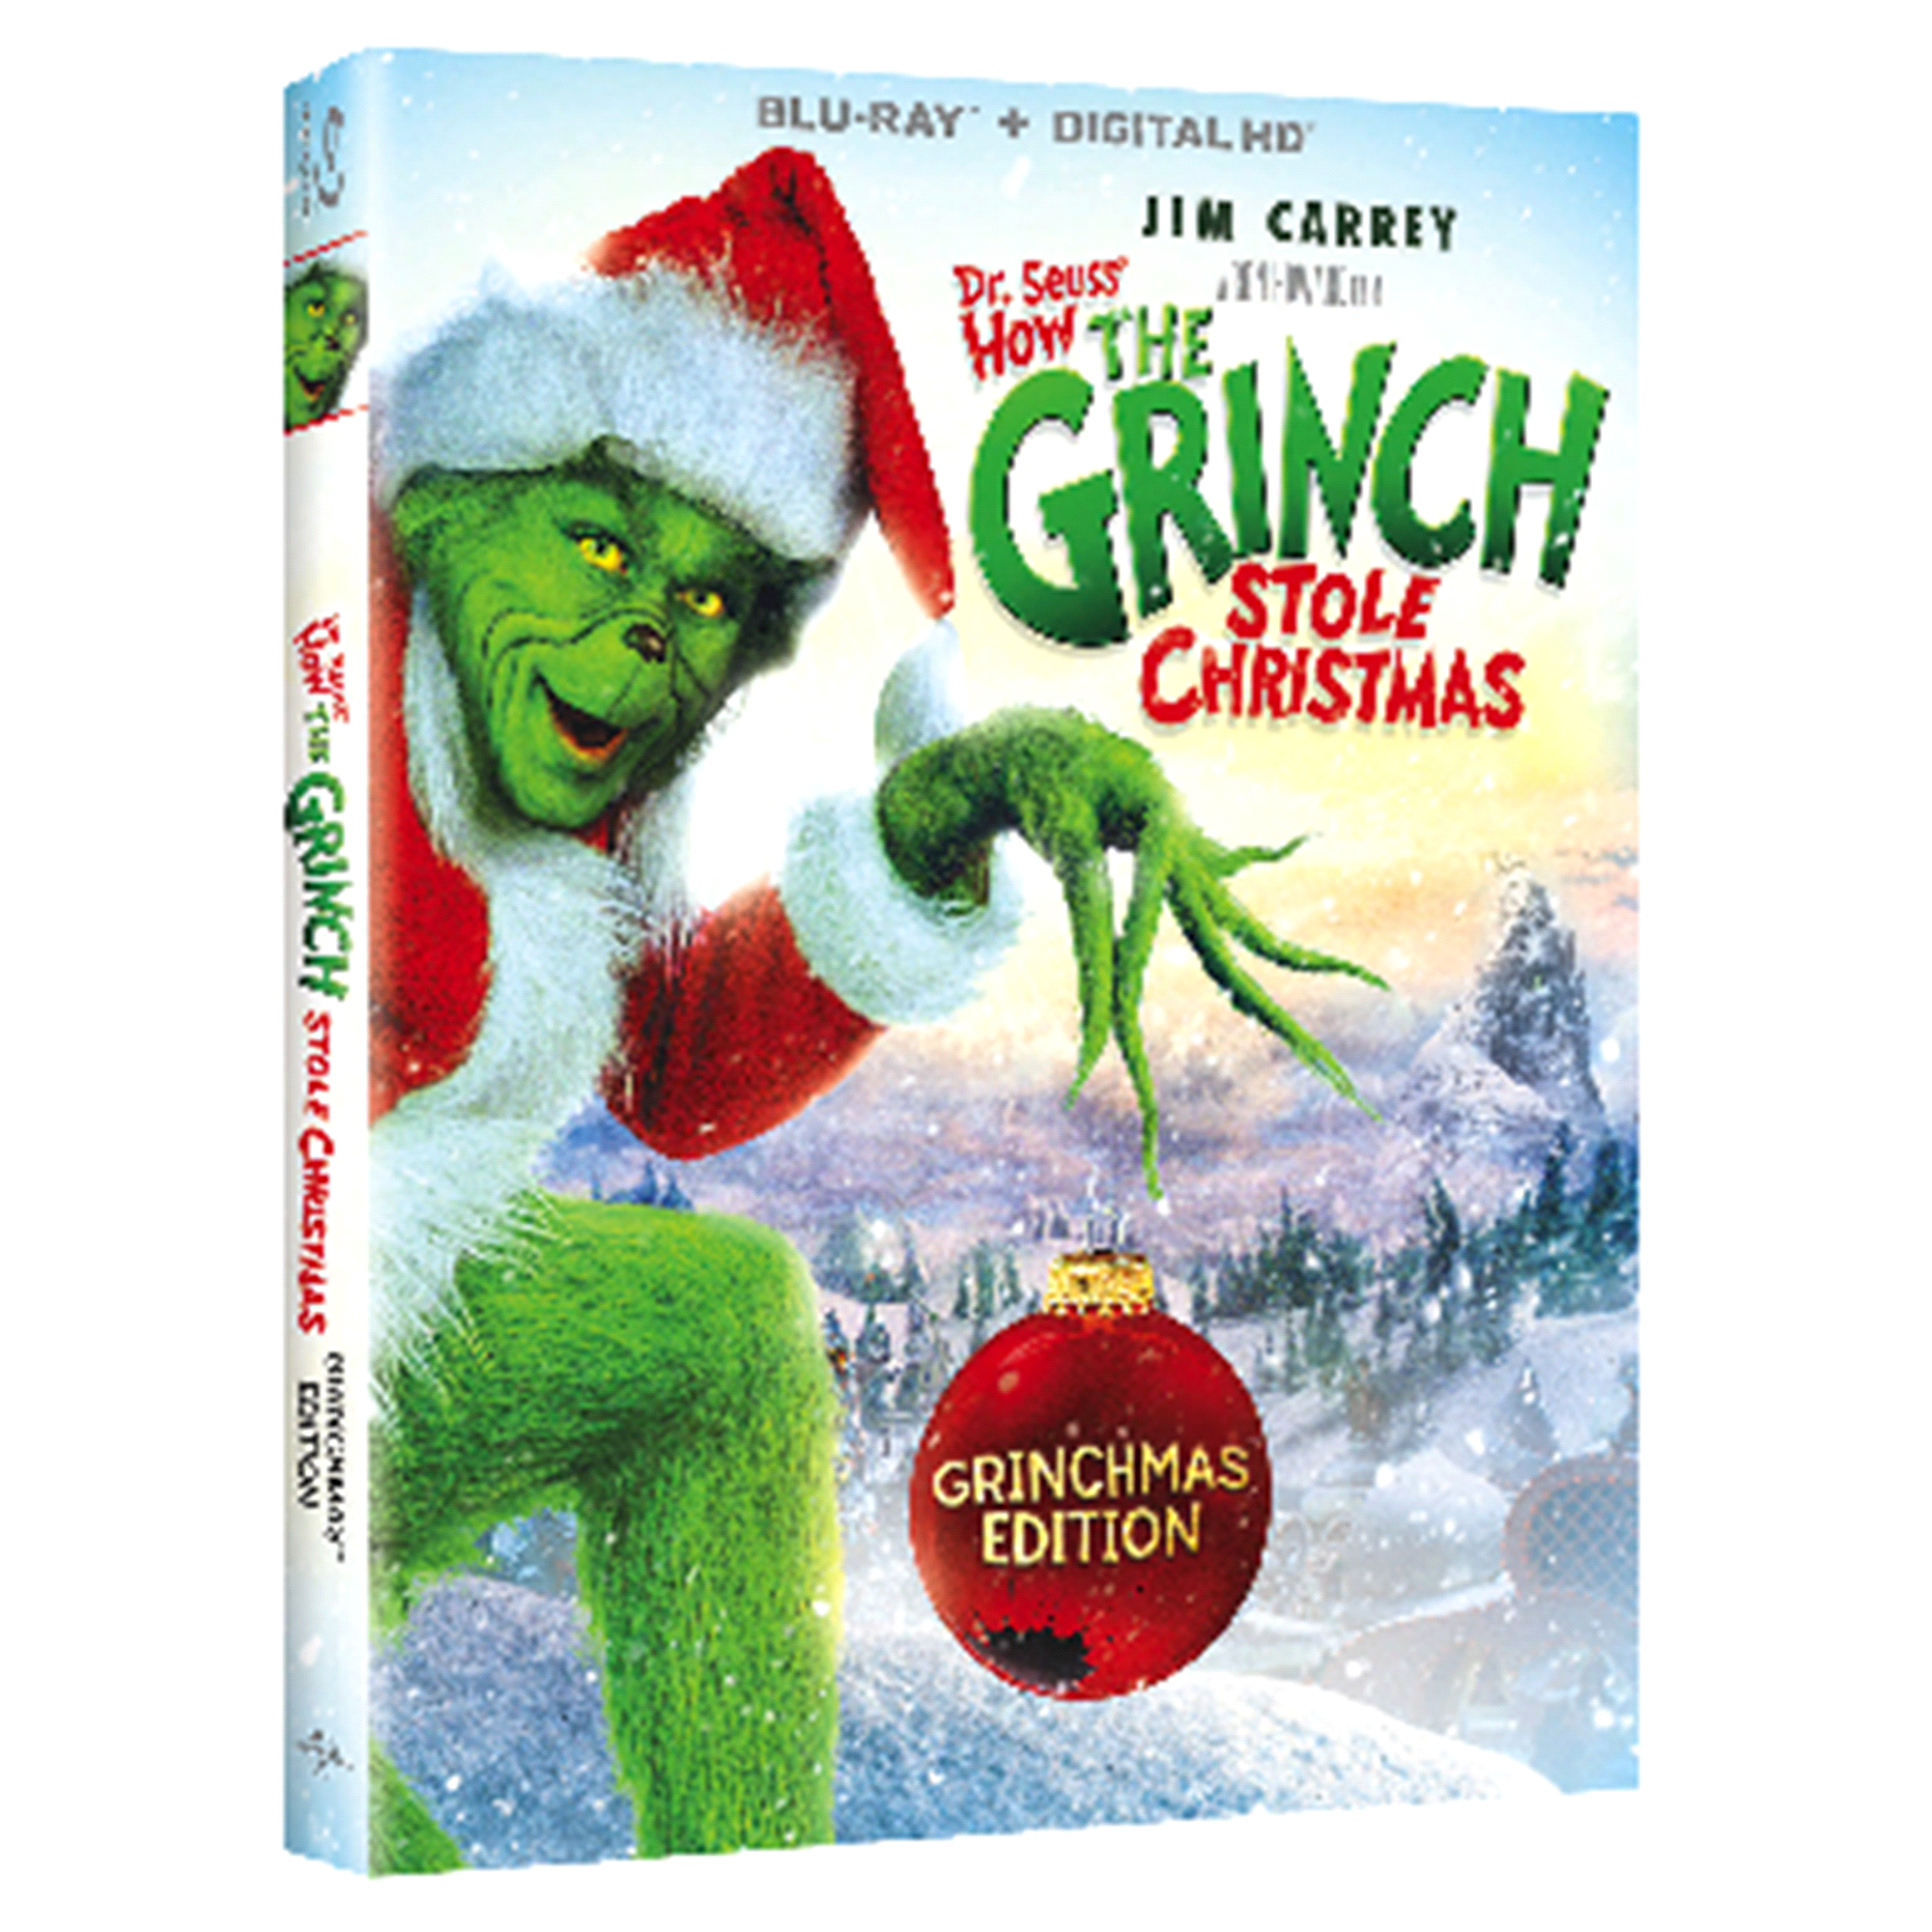 Dr seuss how the grinch stole christmas blu ray digital png 2000x2000 Cel  stole christmas character 065214ead